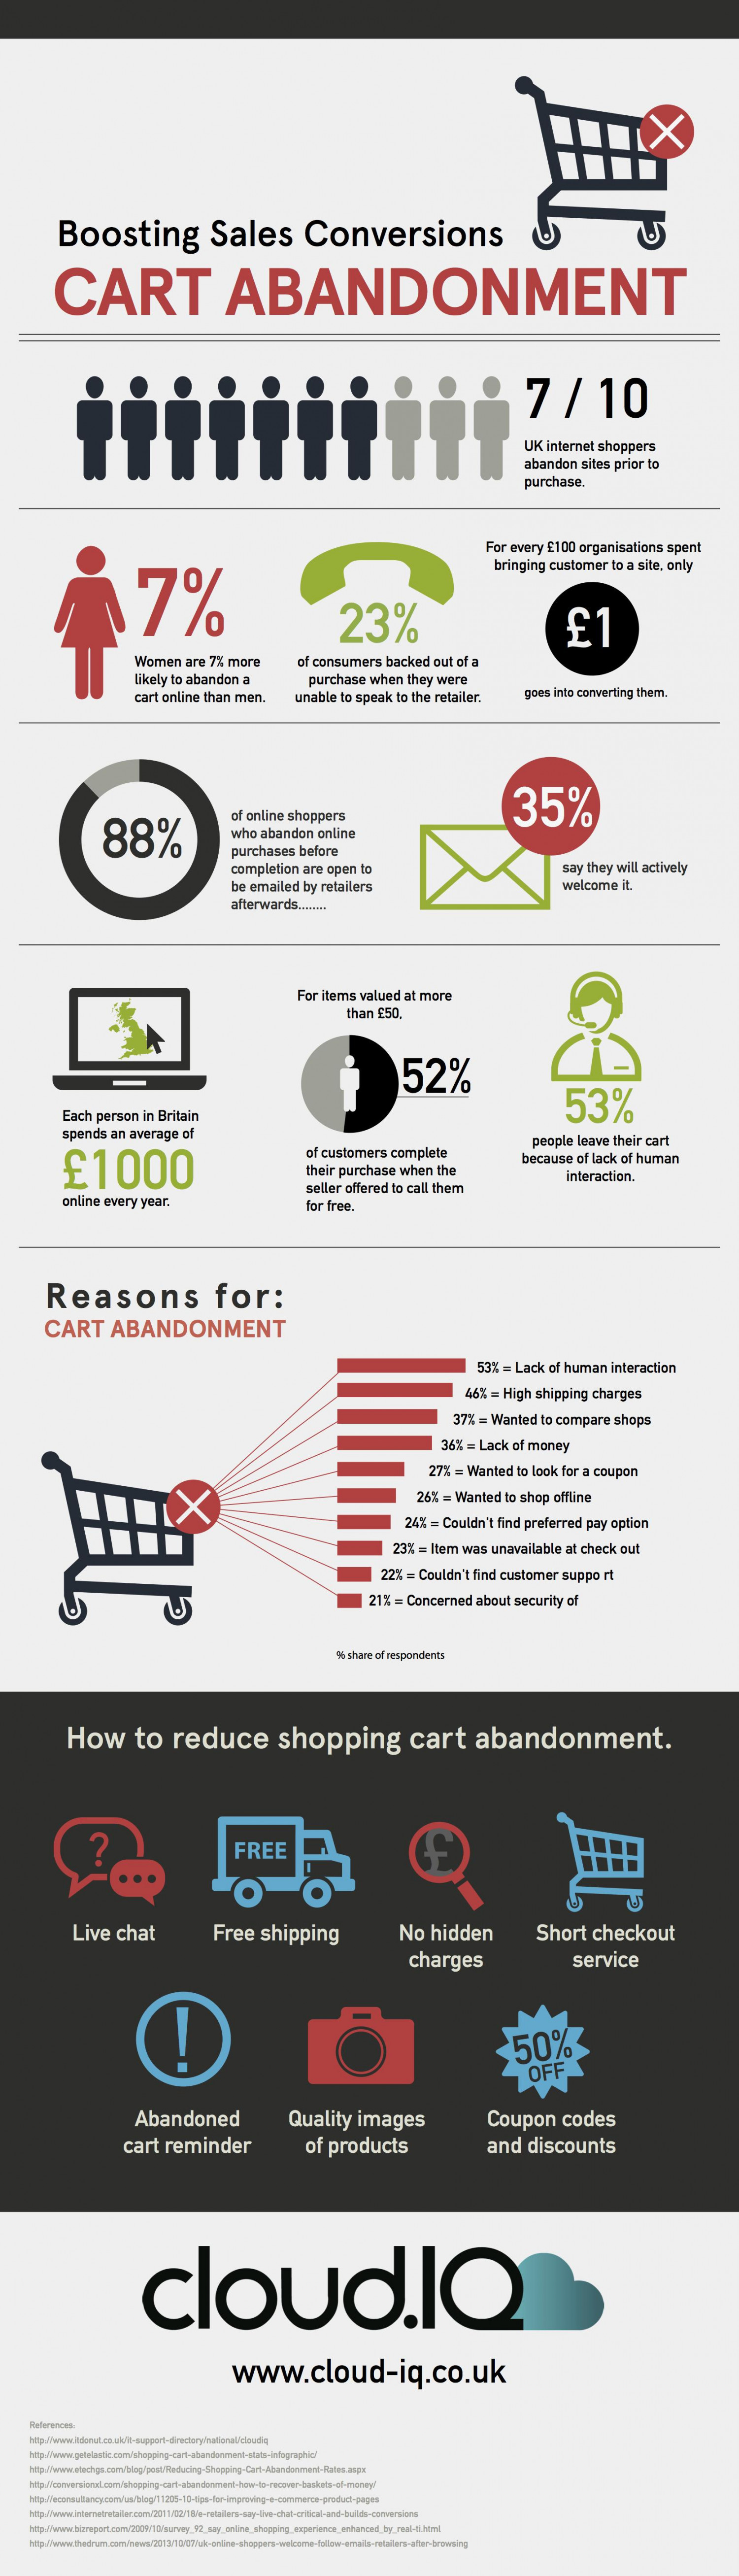 Boosting Sales Conversions:Cart Abandonment Infographic